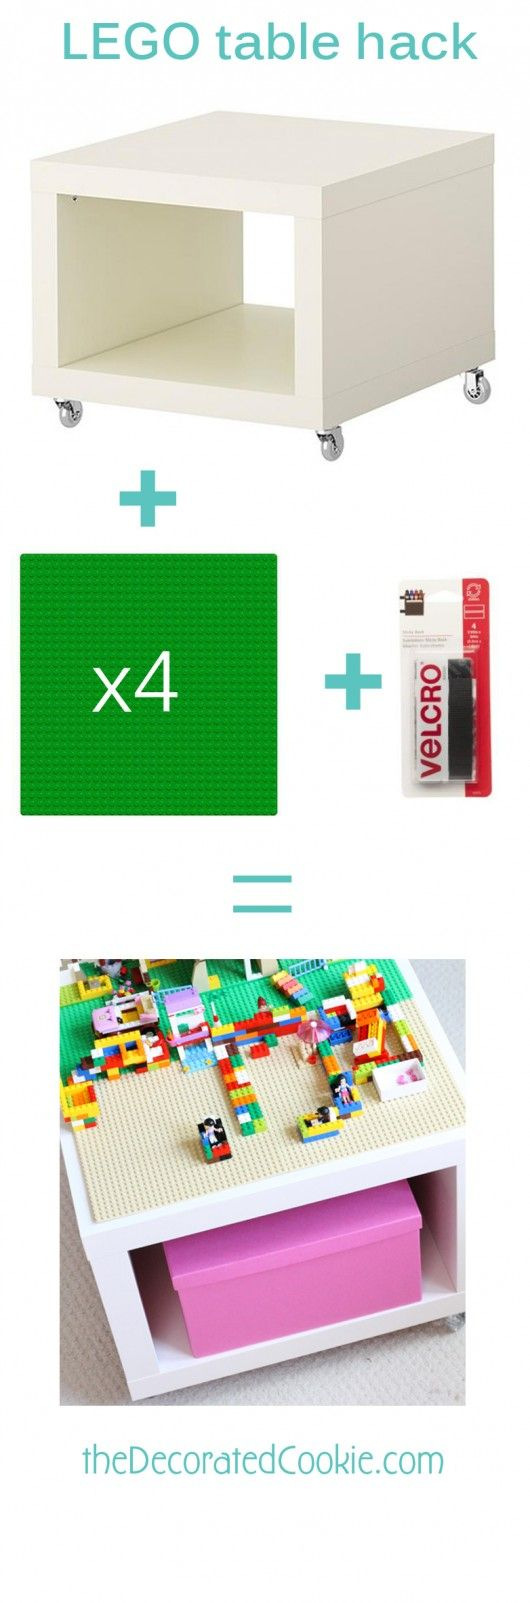 Easy Diy Lego Table From Ikea Hack Easy Diy Tables And